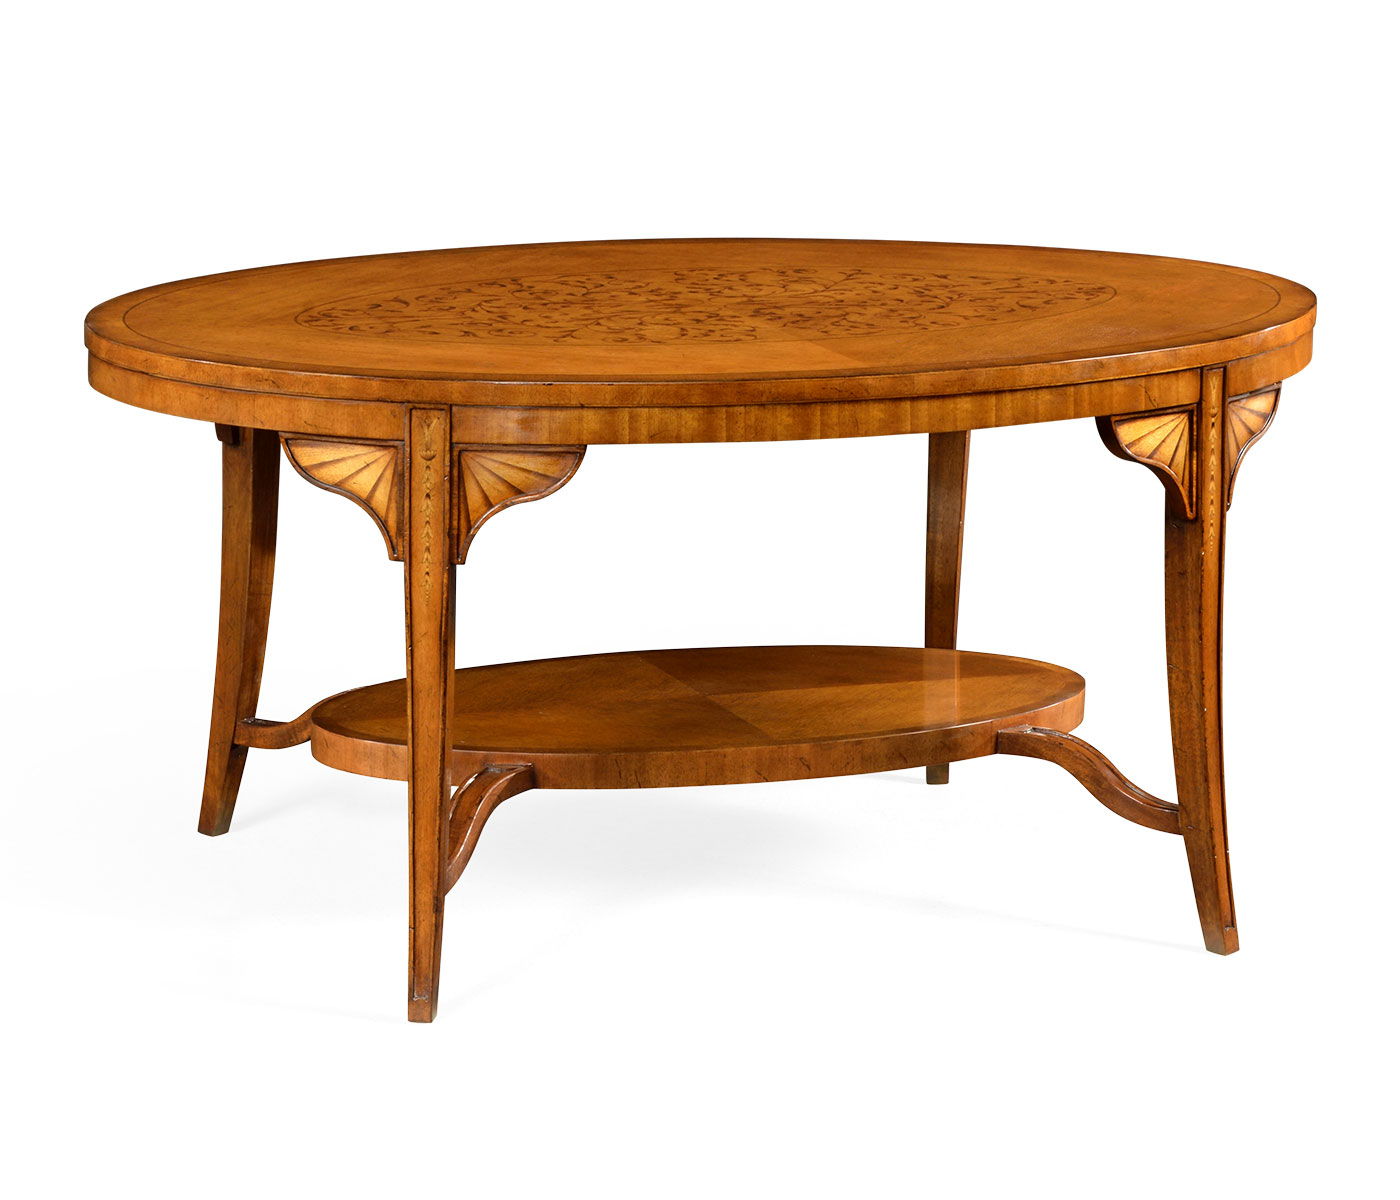 Inlaid satinwood coffee table marquetry inlaid satinwood coffee table geotapseo Choice Image